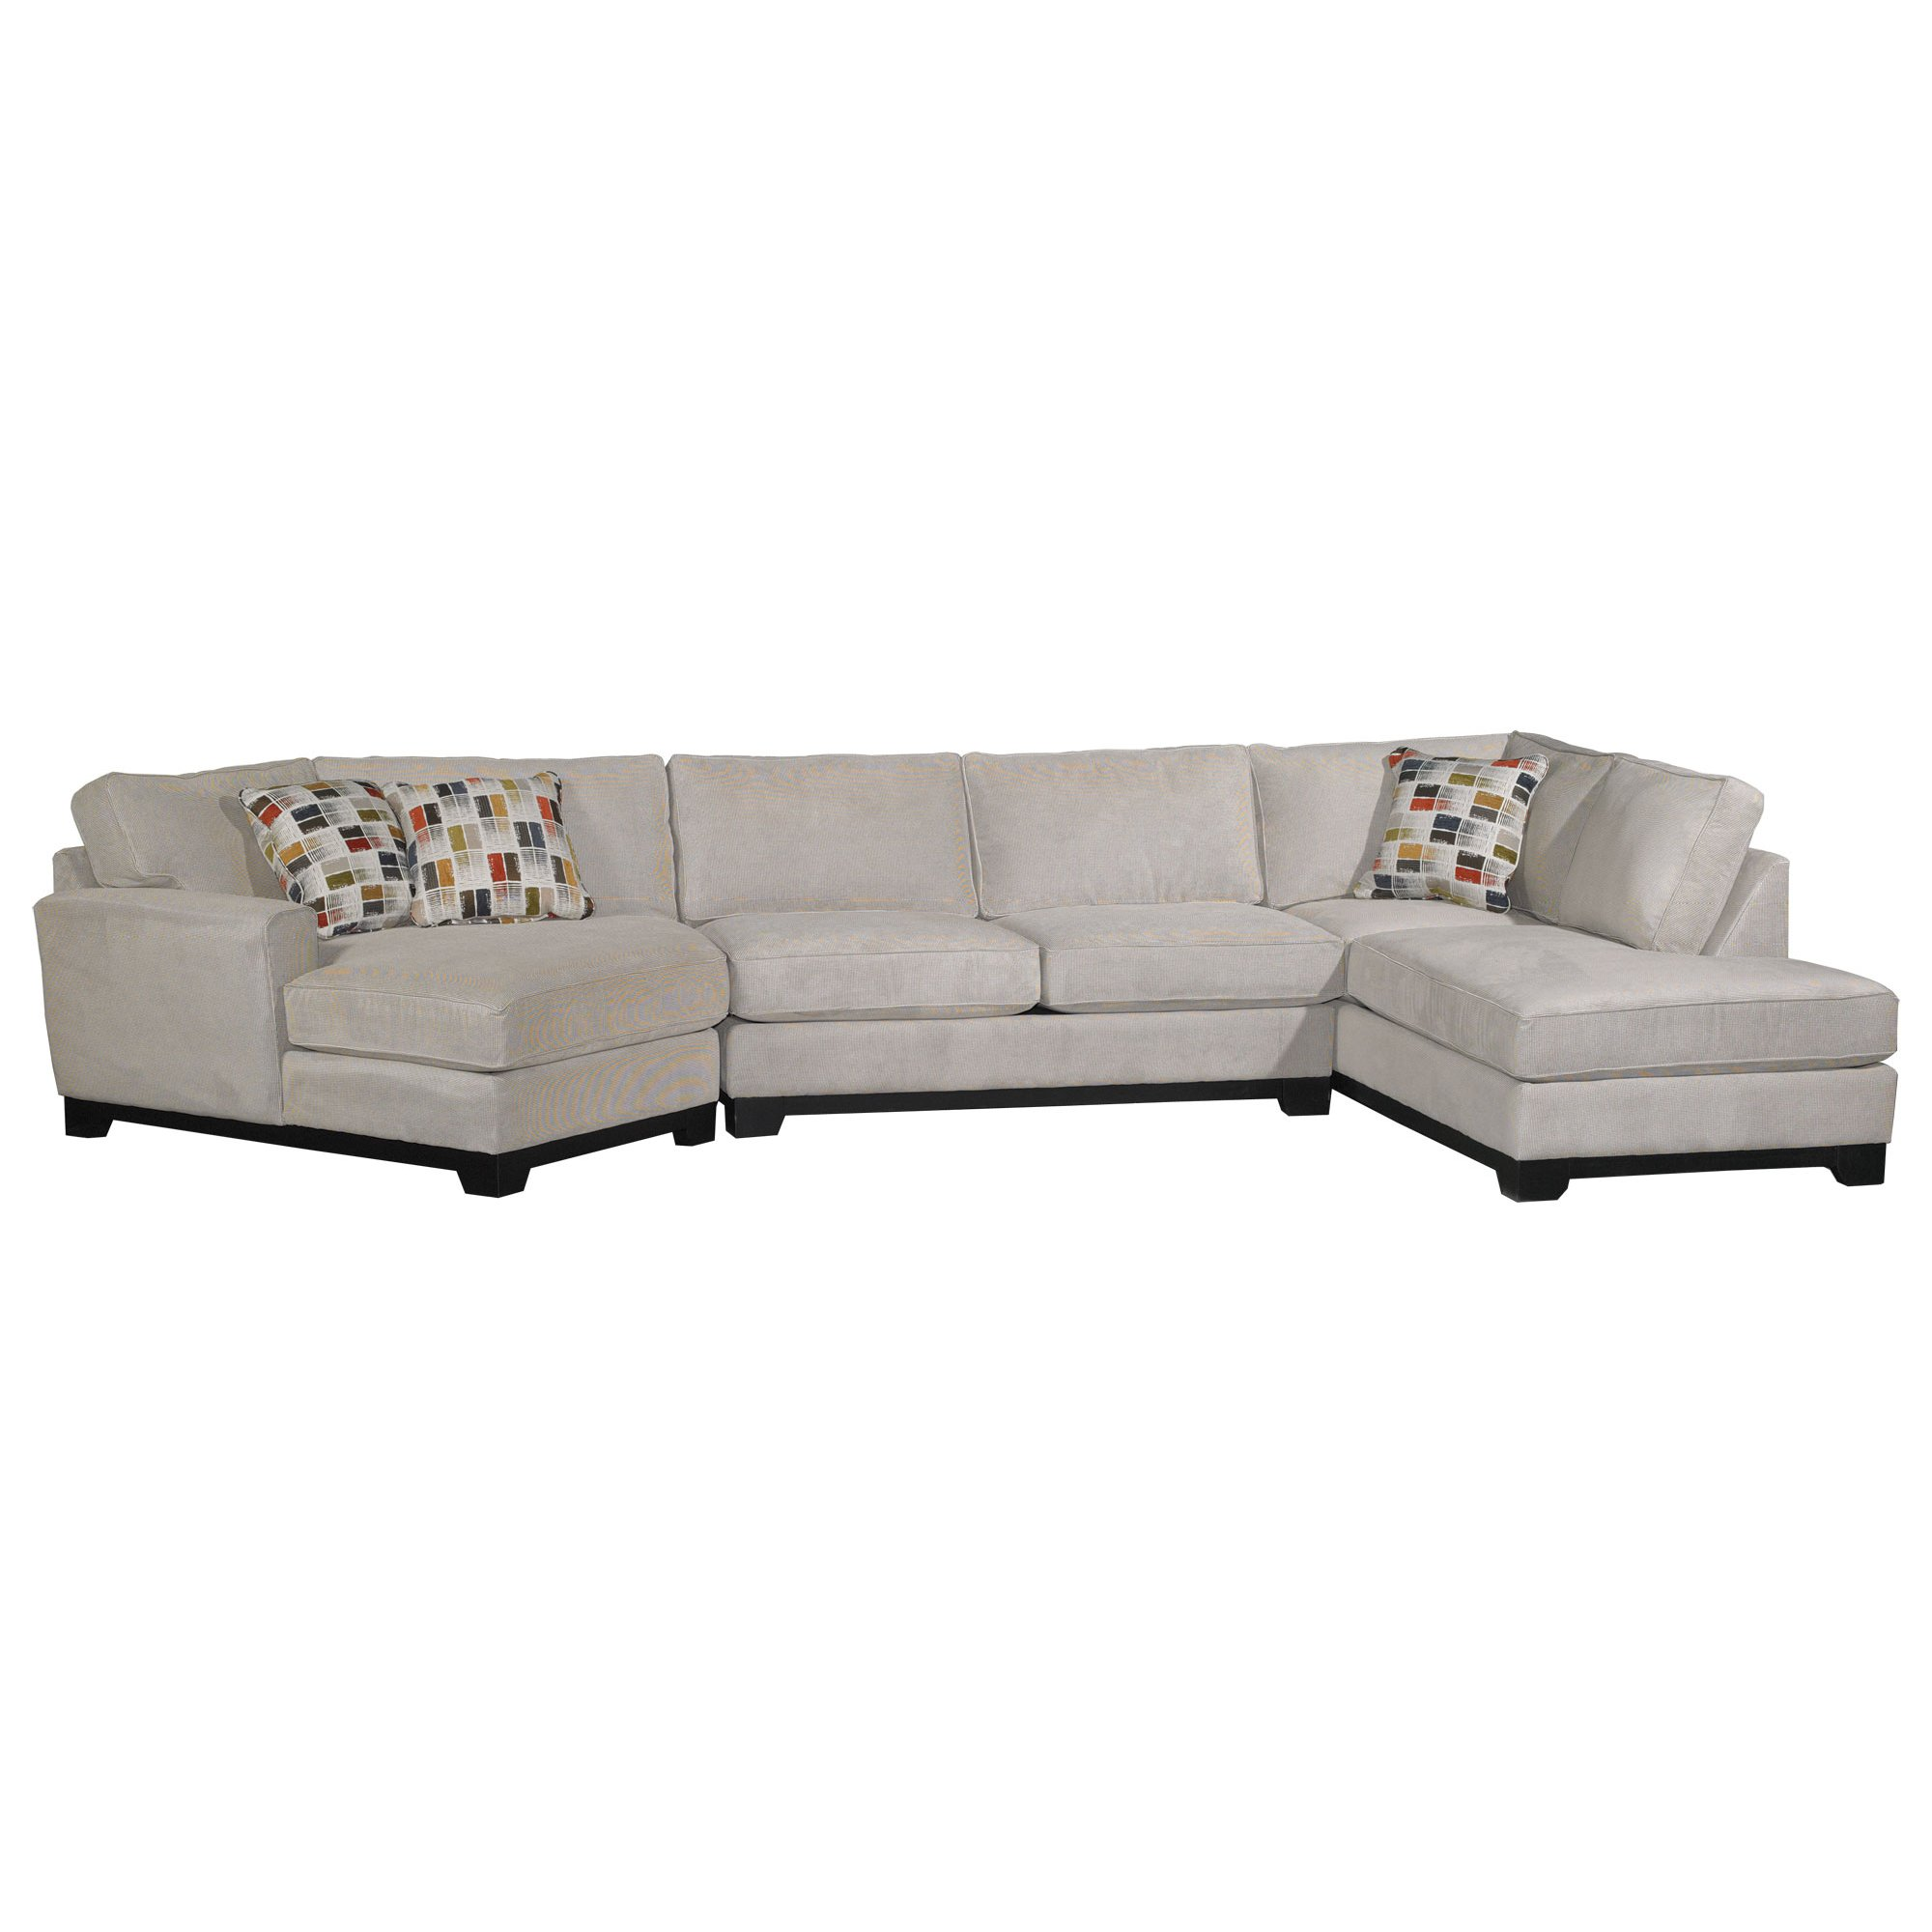 hemp white casual 3piece upholstered sectional